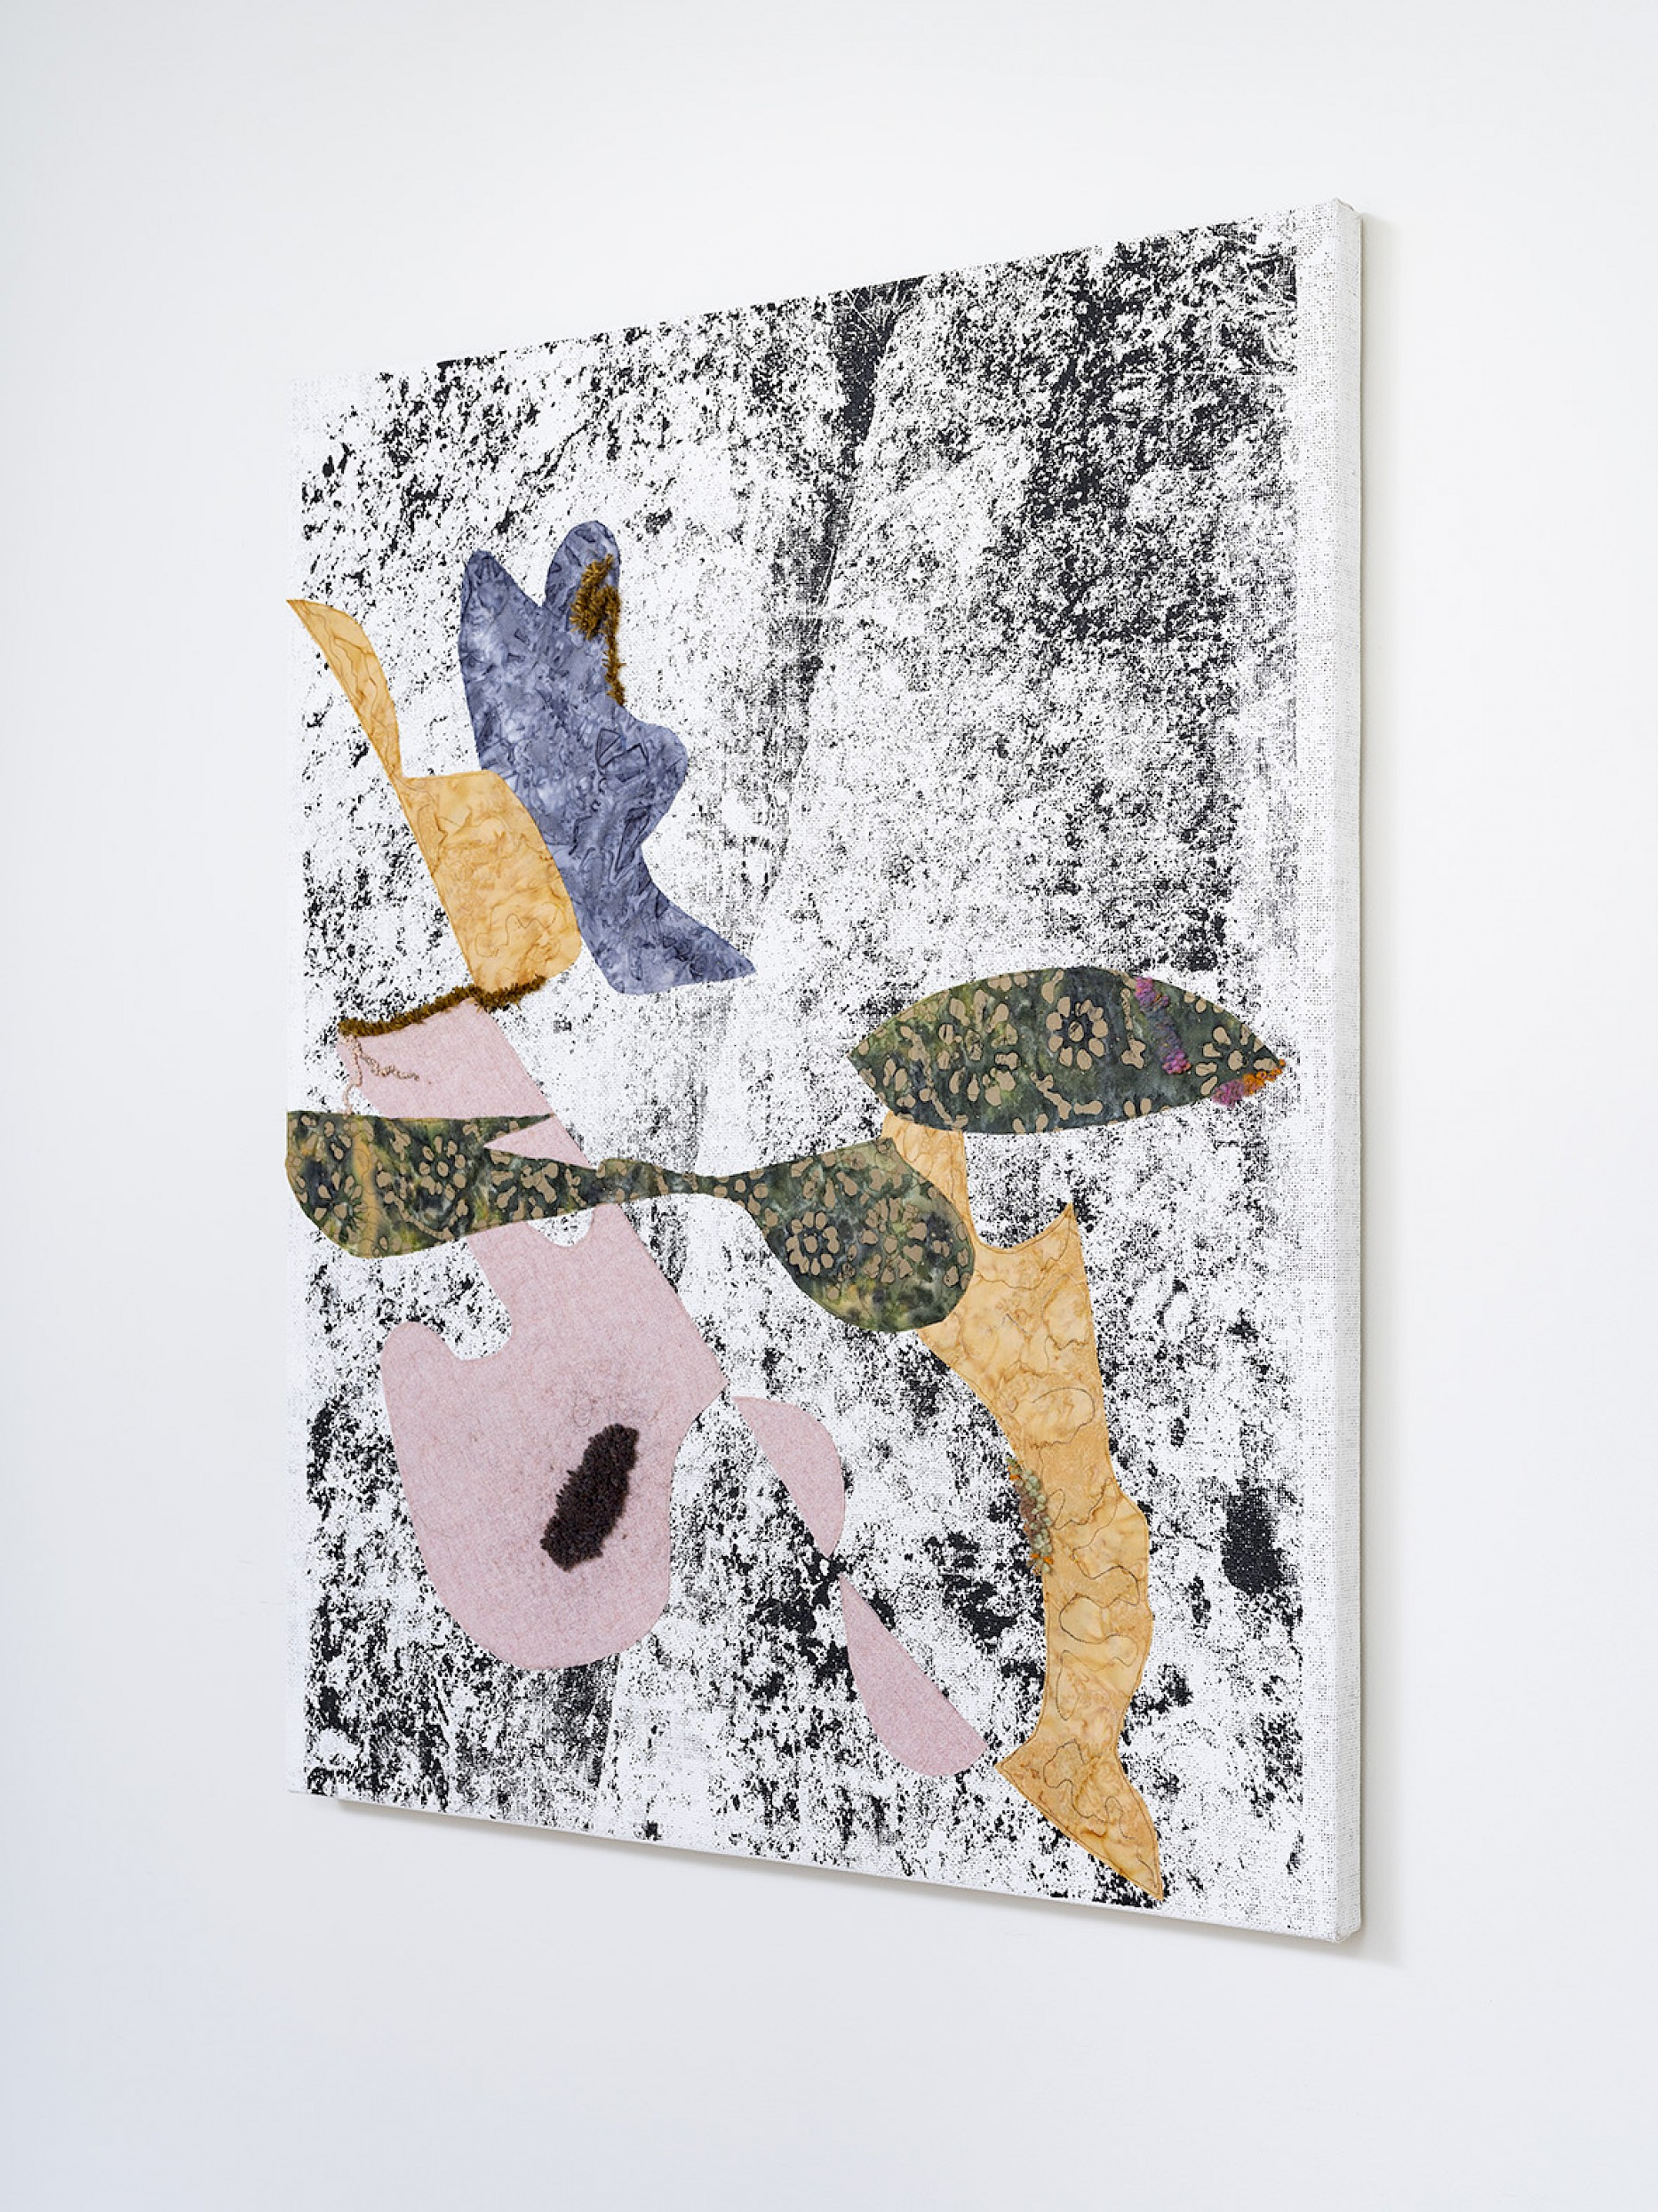 T0012357 Shezad Dawood The Trouble with Lichen 3, 2019